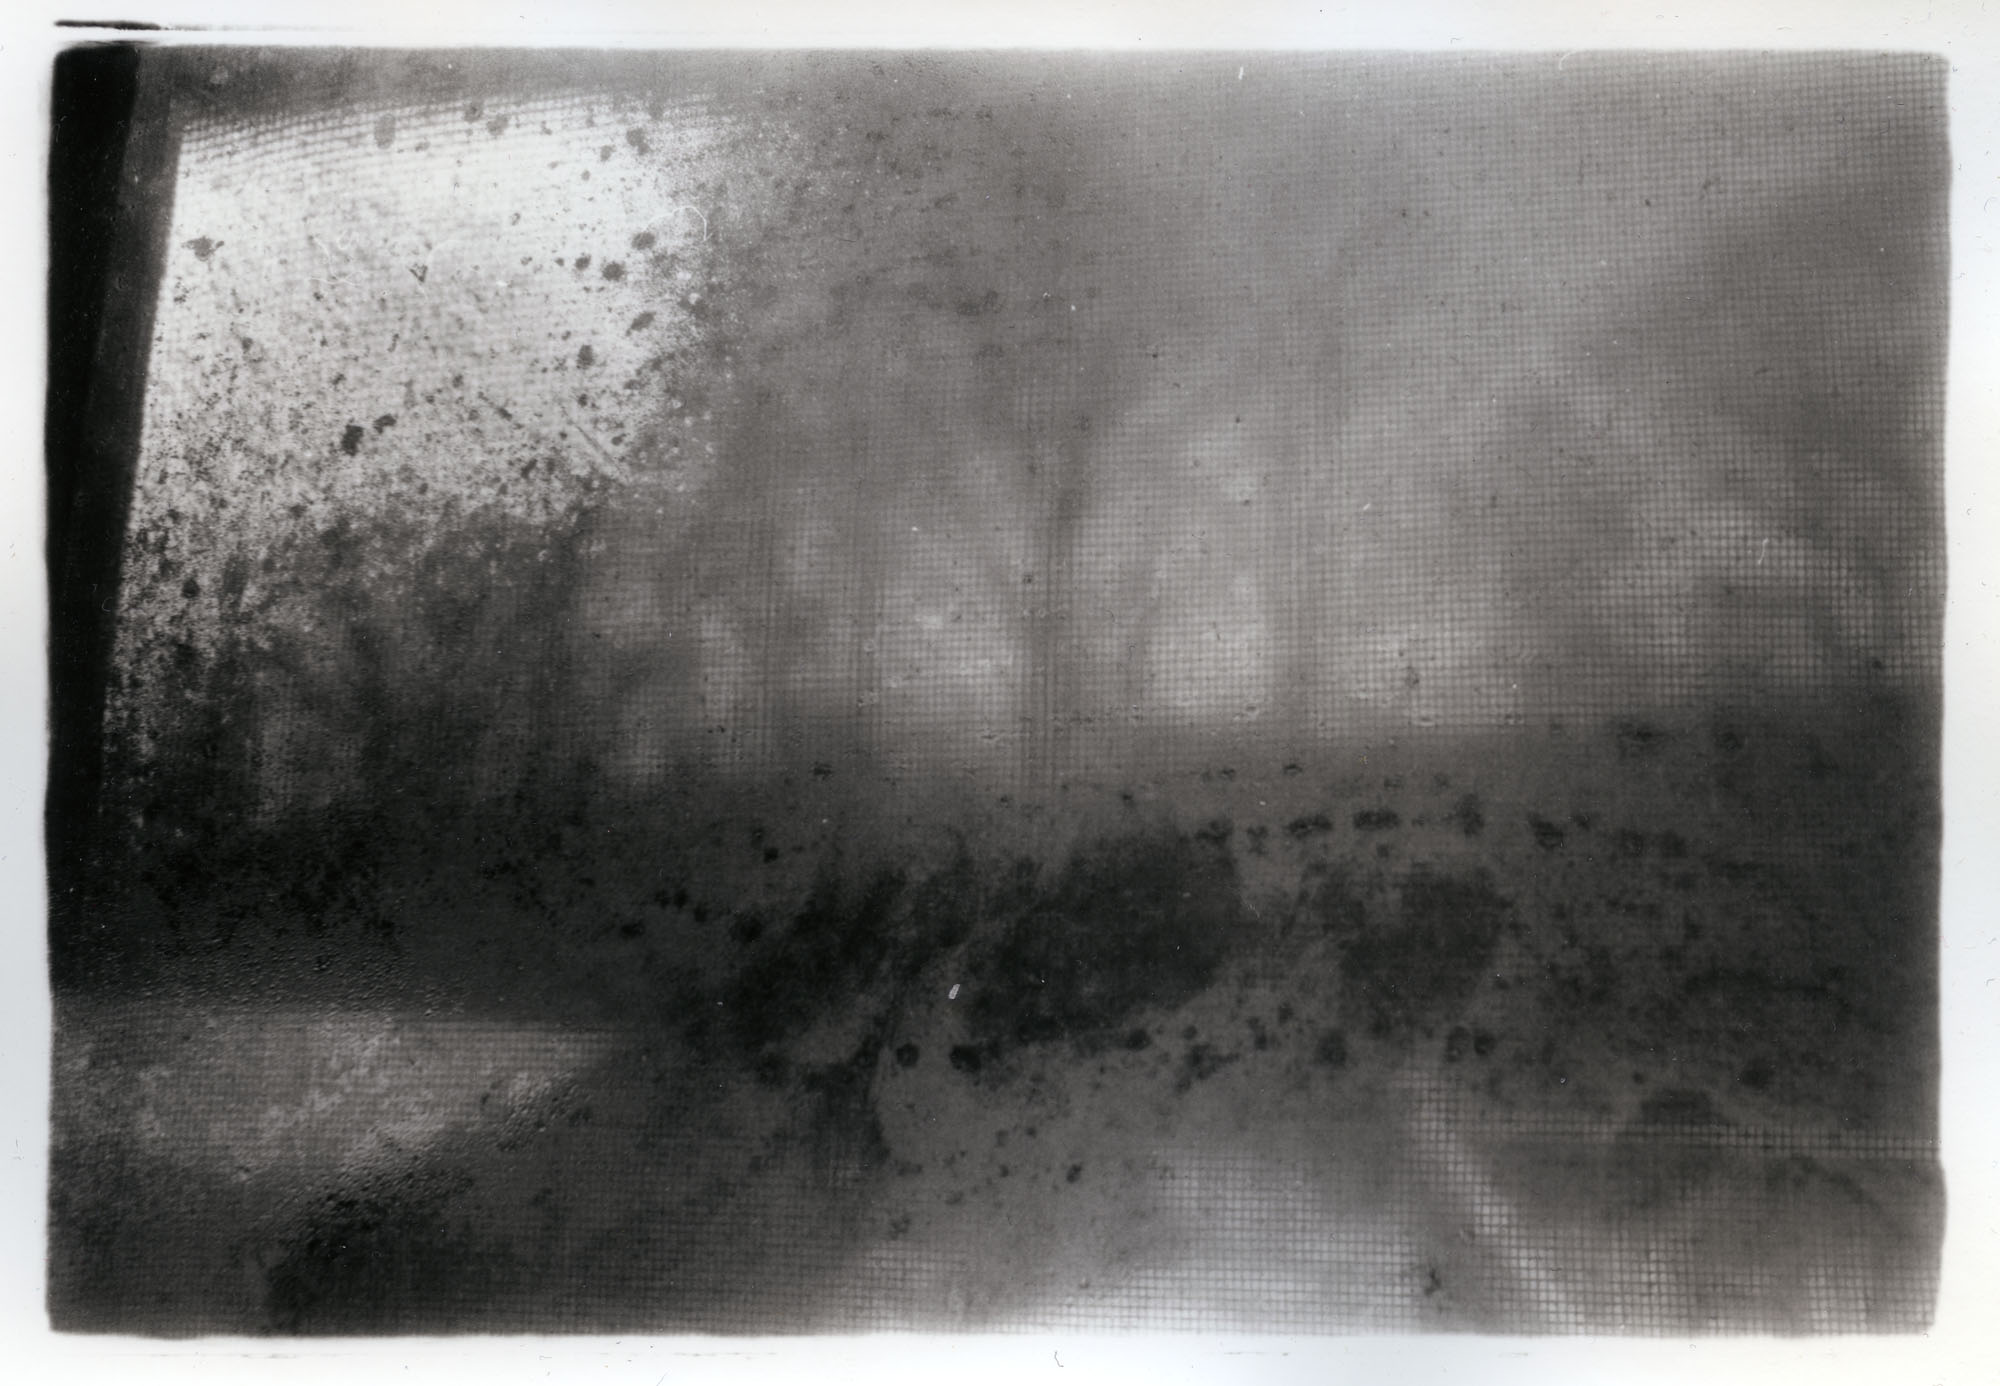 Fogged Window    Silver Gelatin Print, NJ, 2015